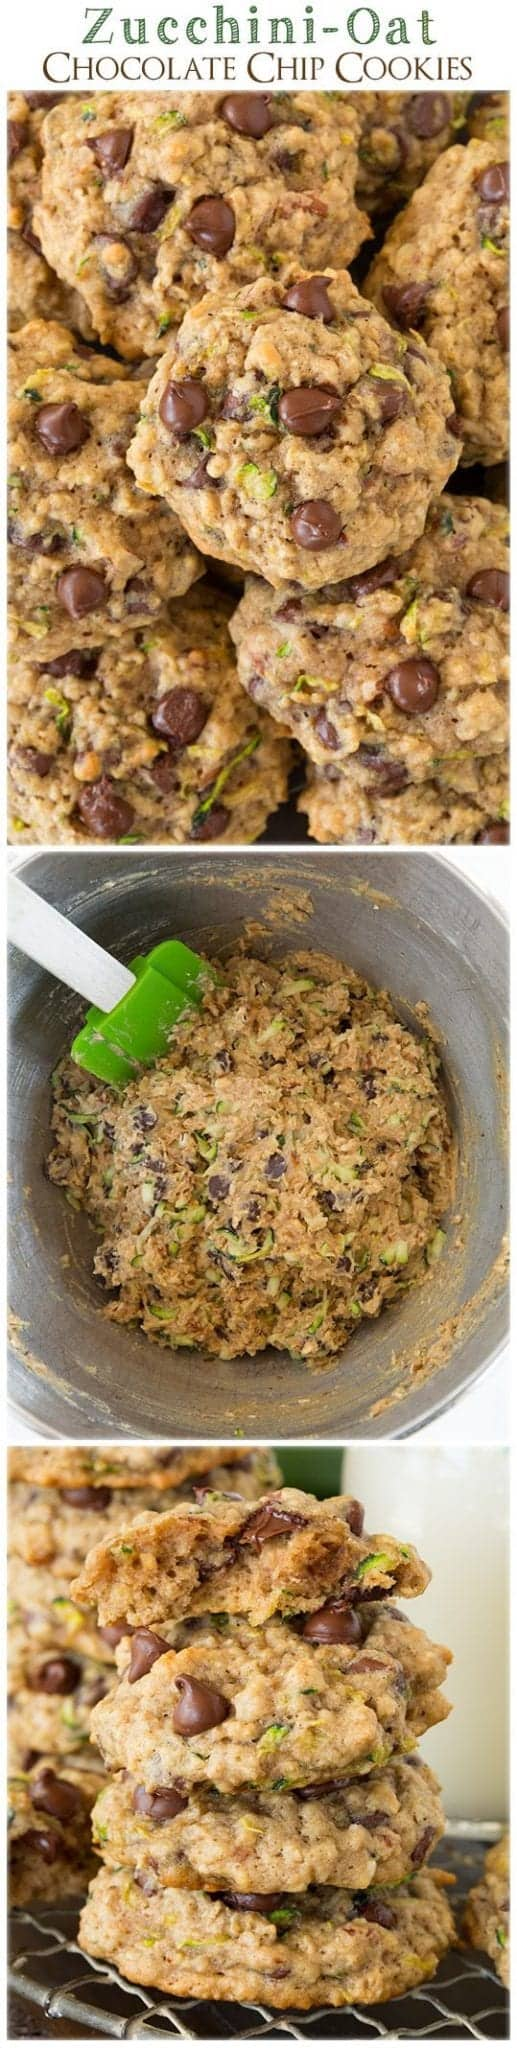 Zucchini Oat Chip Cookies via Pinterest